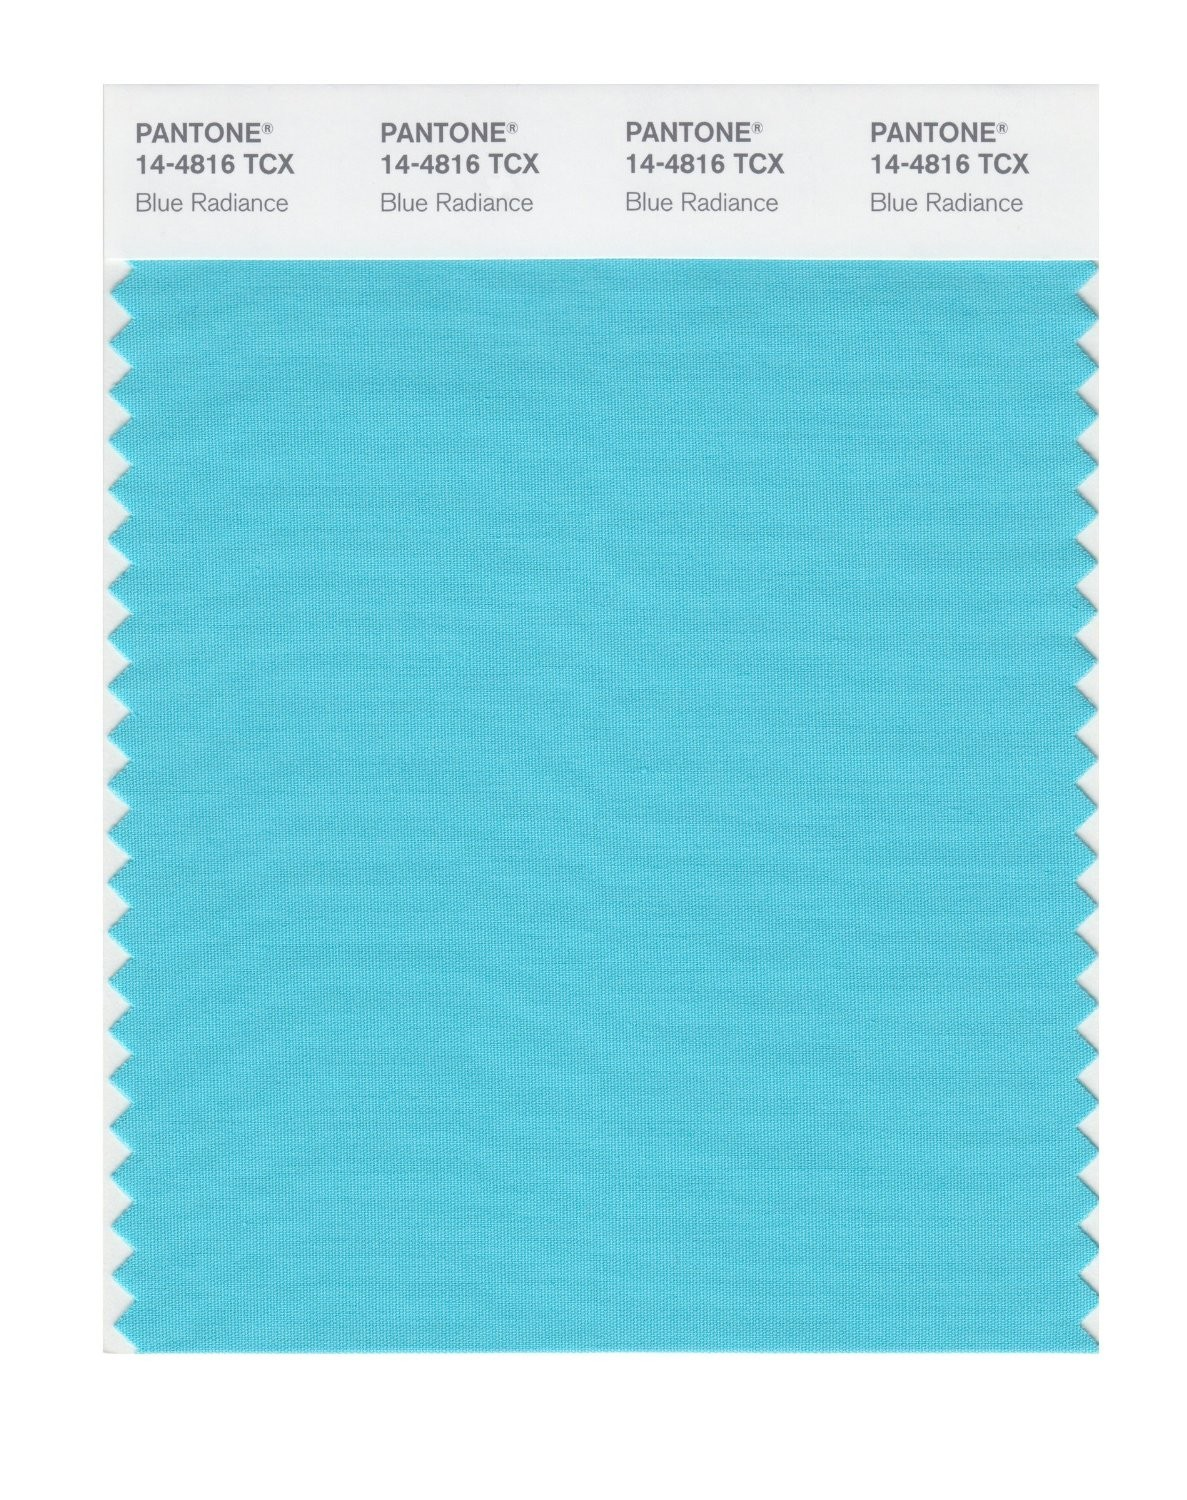 Pantone 14-4816 TCX Swatch Card Blue Radiance